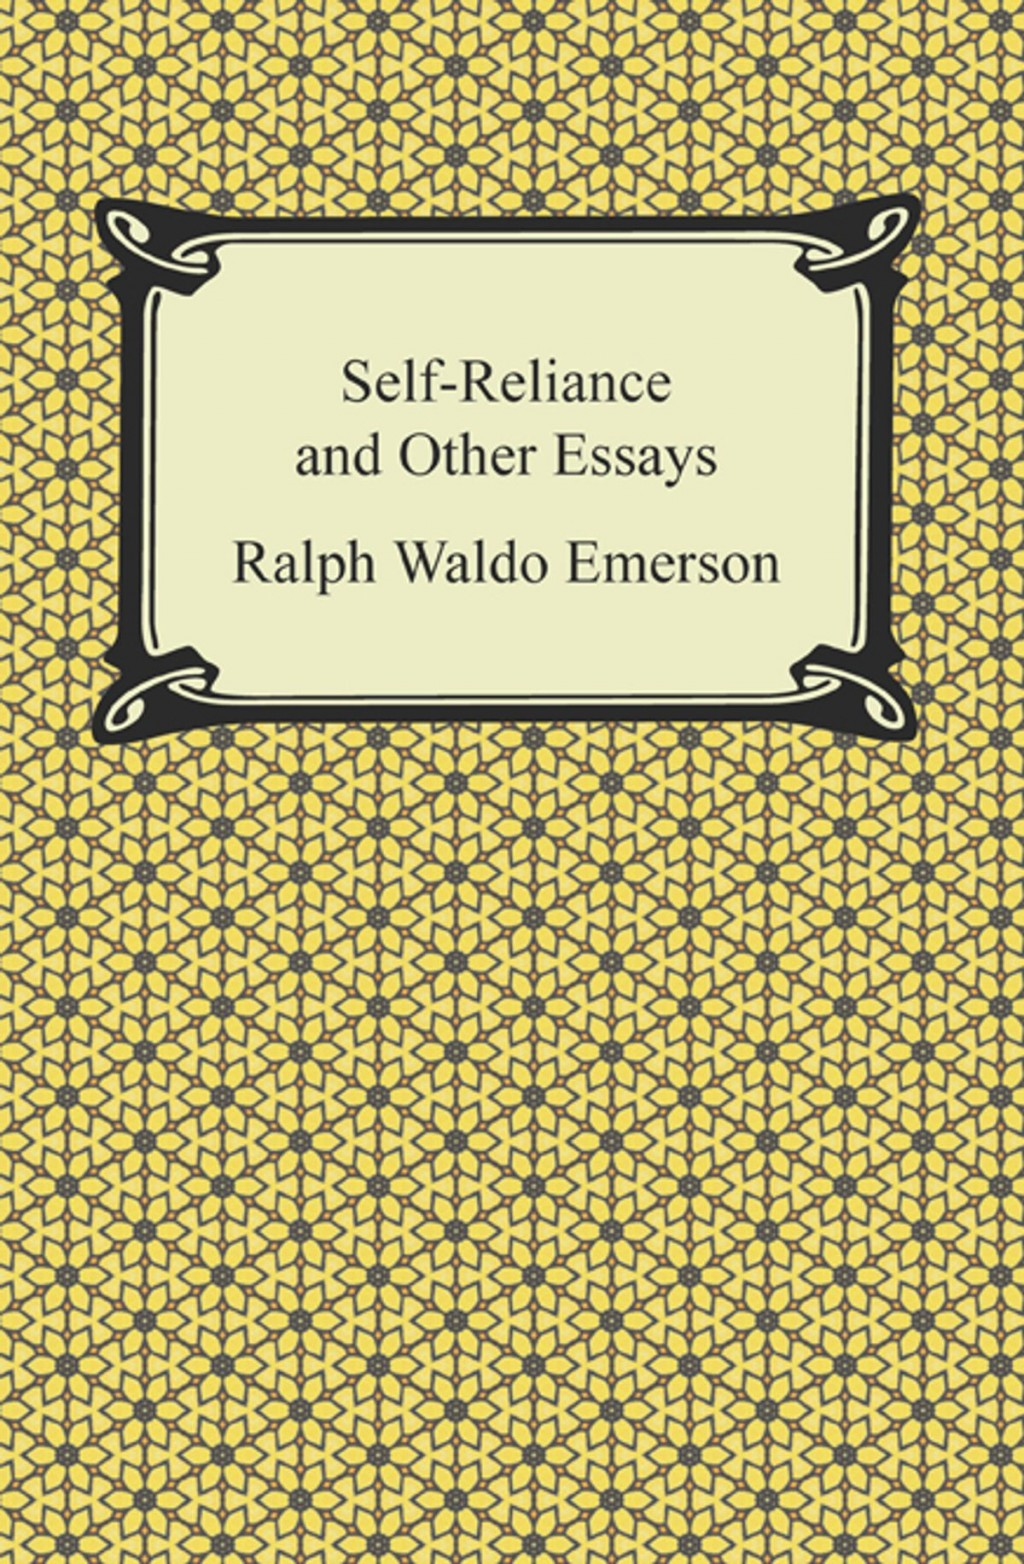 017 Self Reliance And Other Essays Essay Example Formidable Ekşi Self-reliance (dover Thrift Editions) Pdf Epub Large